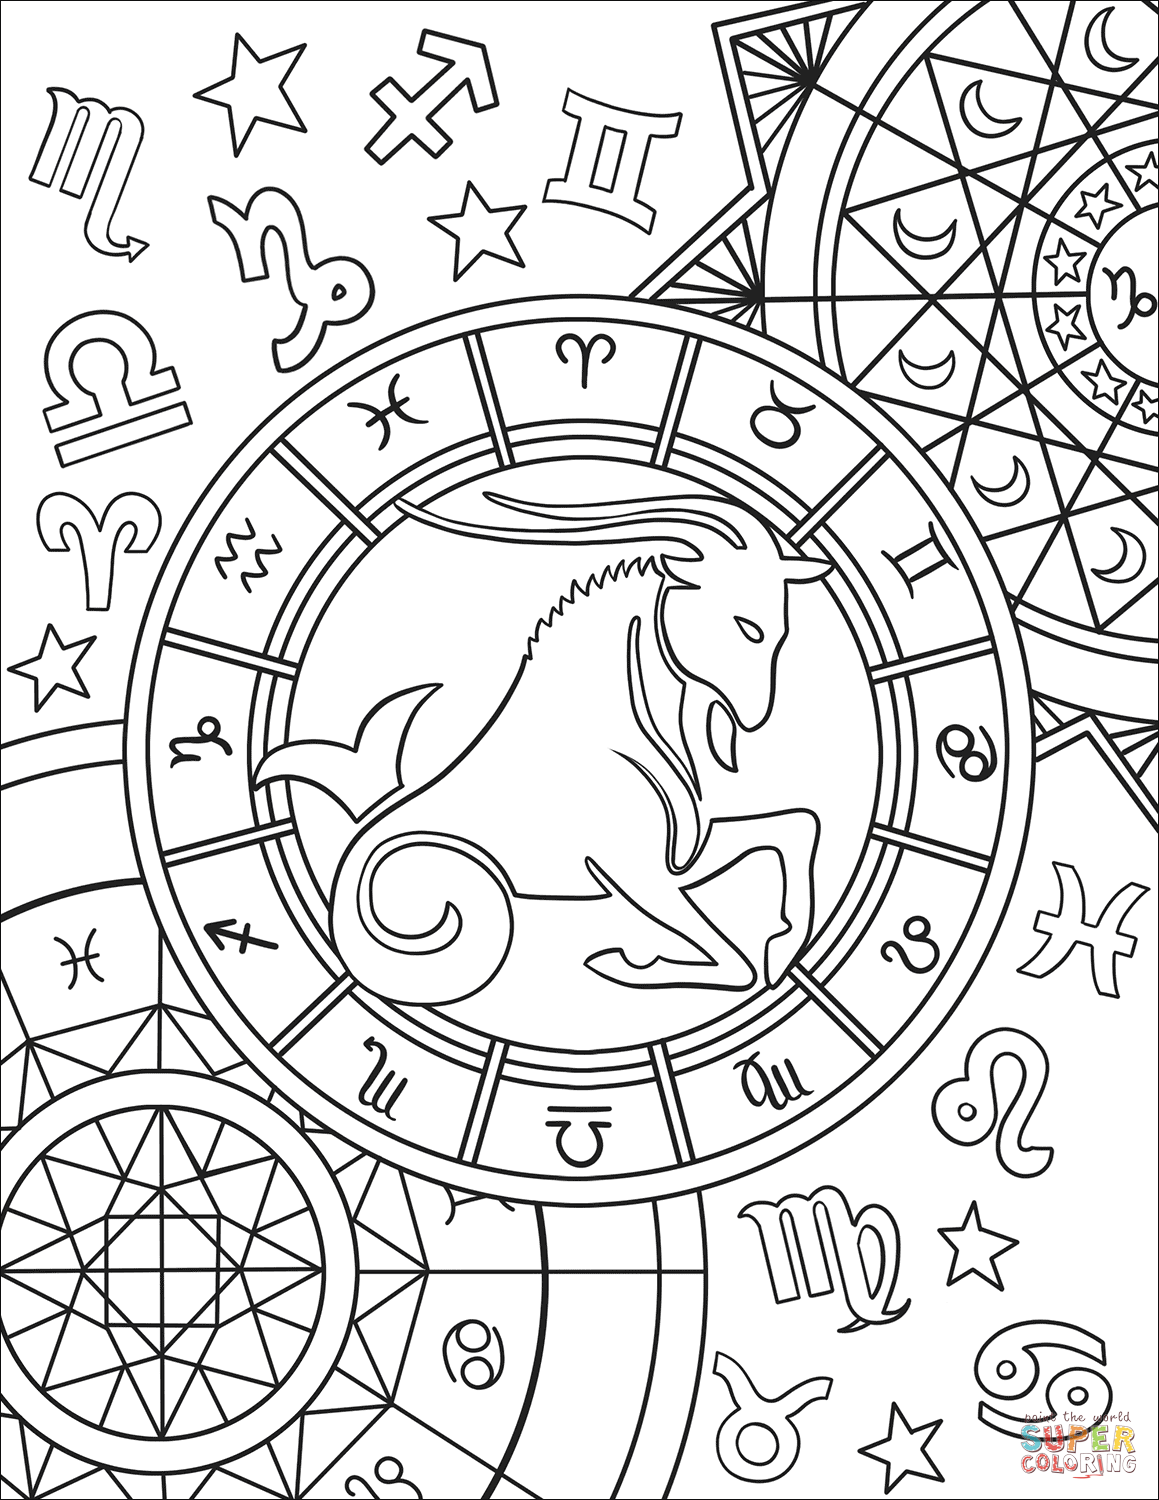 flirting signs for girls free printable 2017 coloring pages